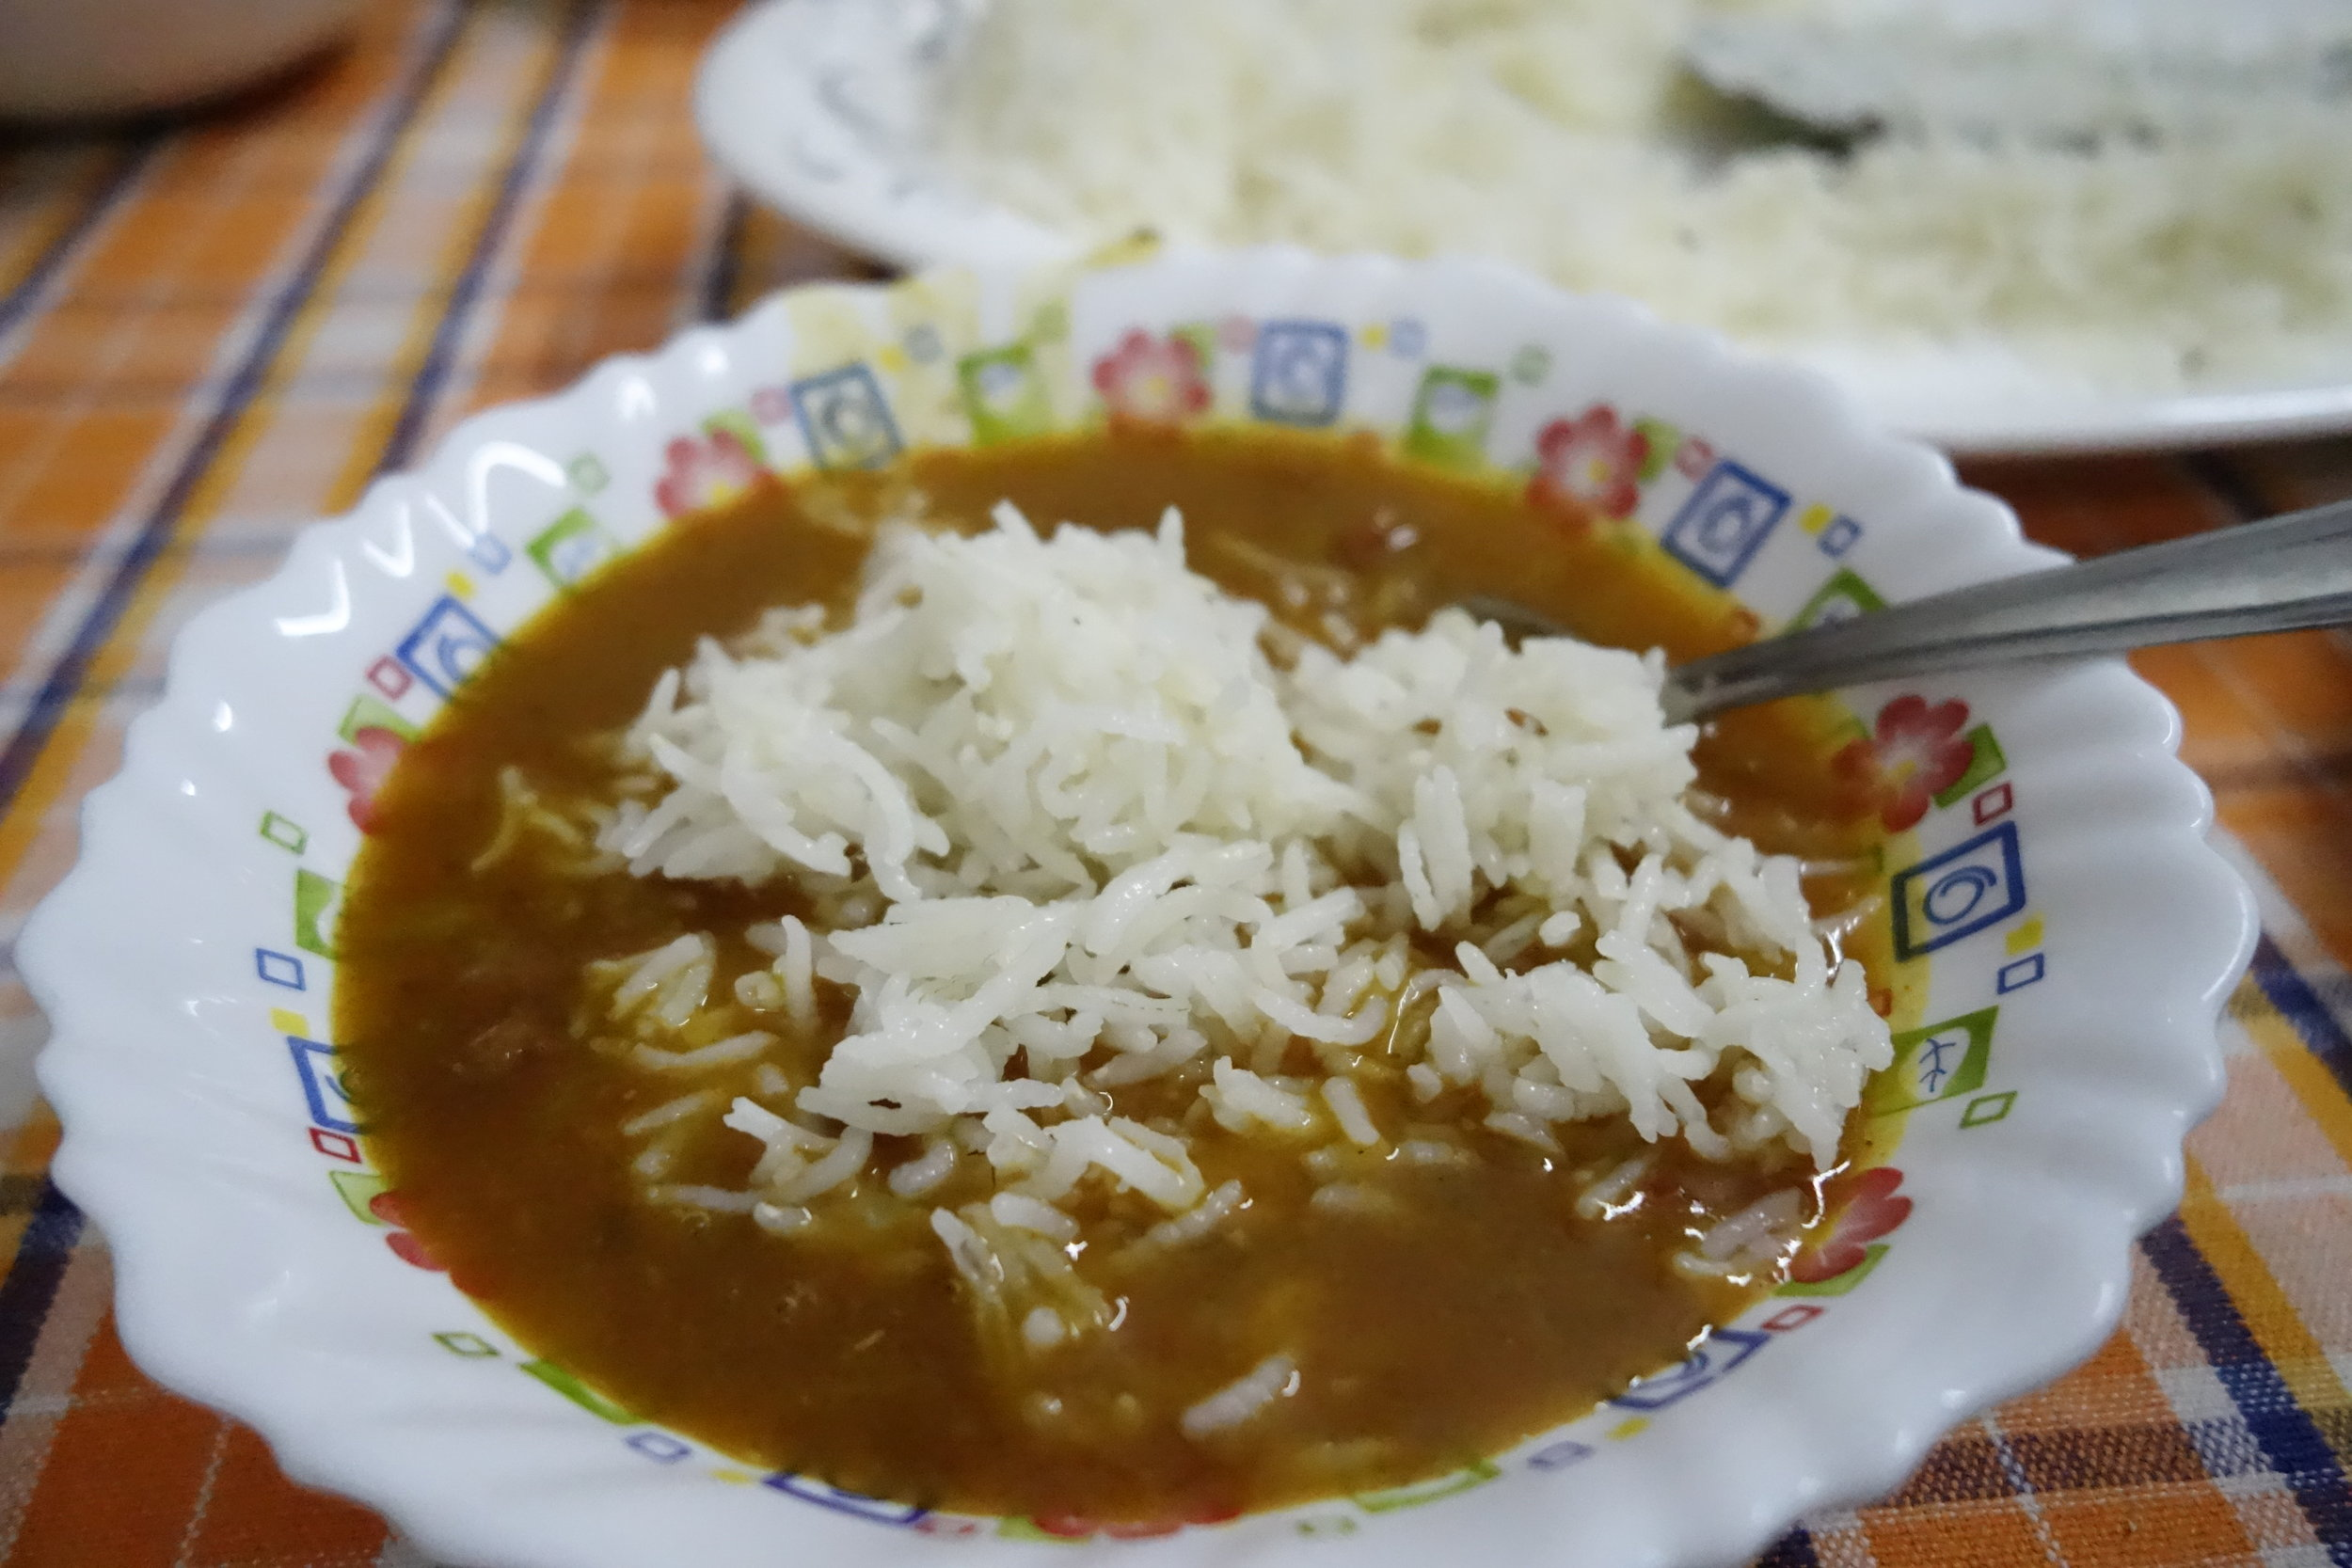 Rajma -popular South Asian vegetarian dish consisting of red kidney beans in a thick gravy with many Indian spices and served with rice.